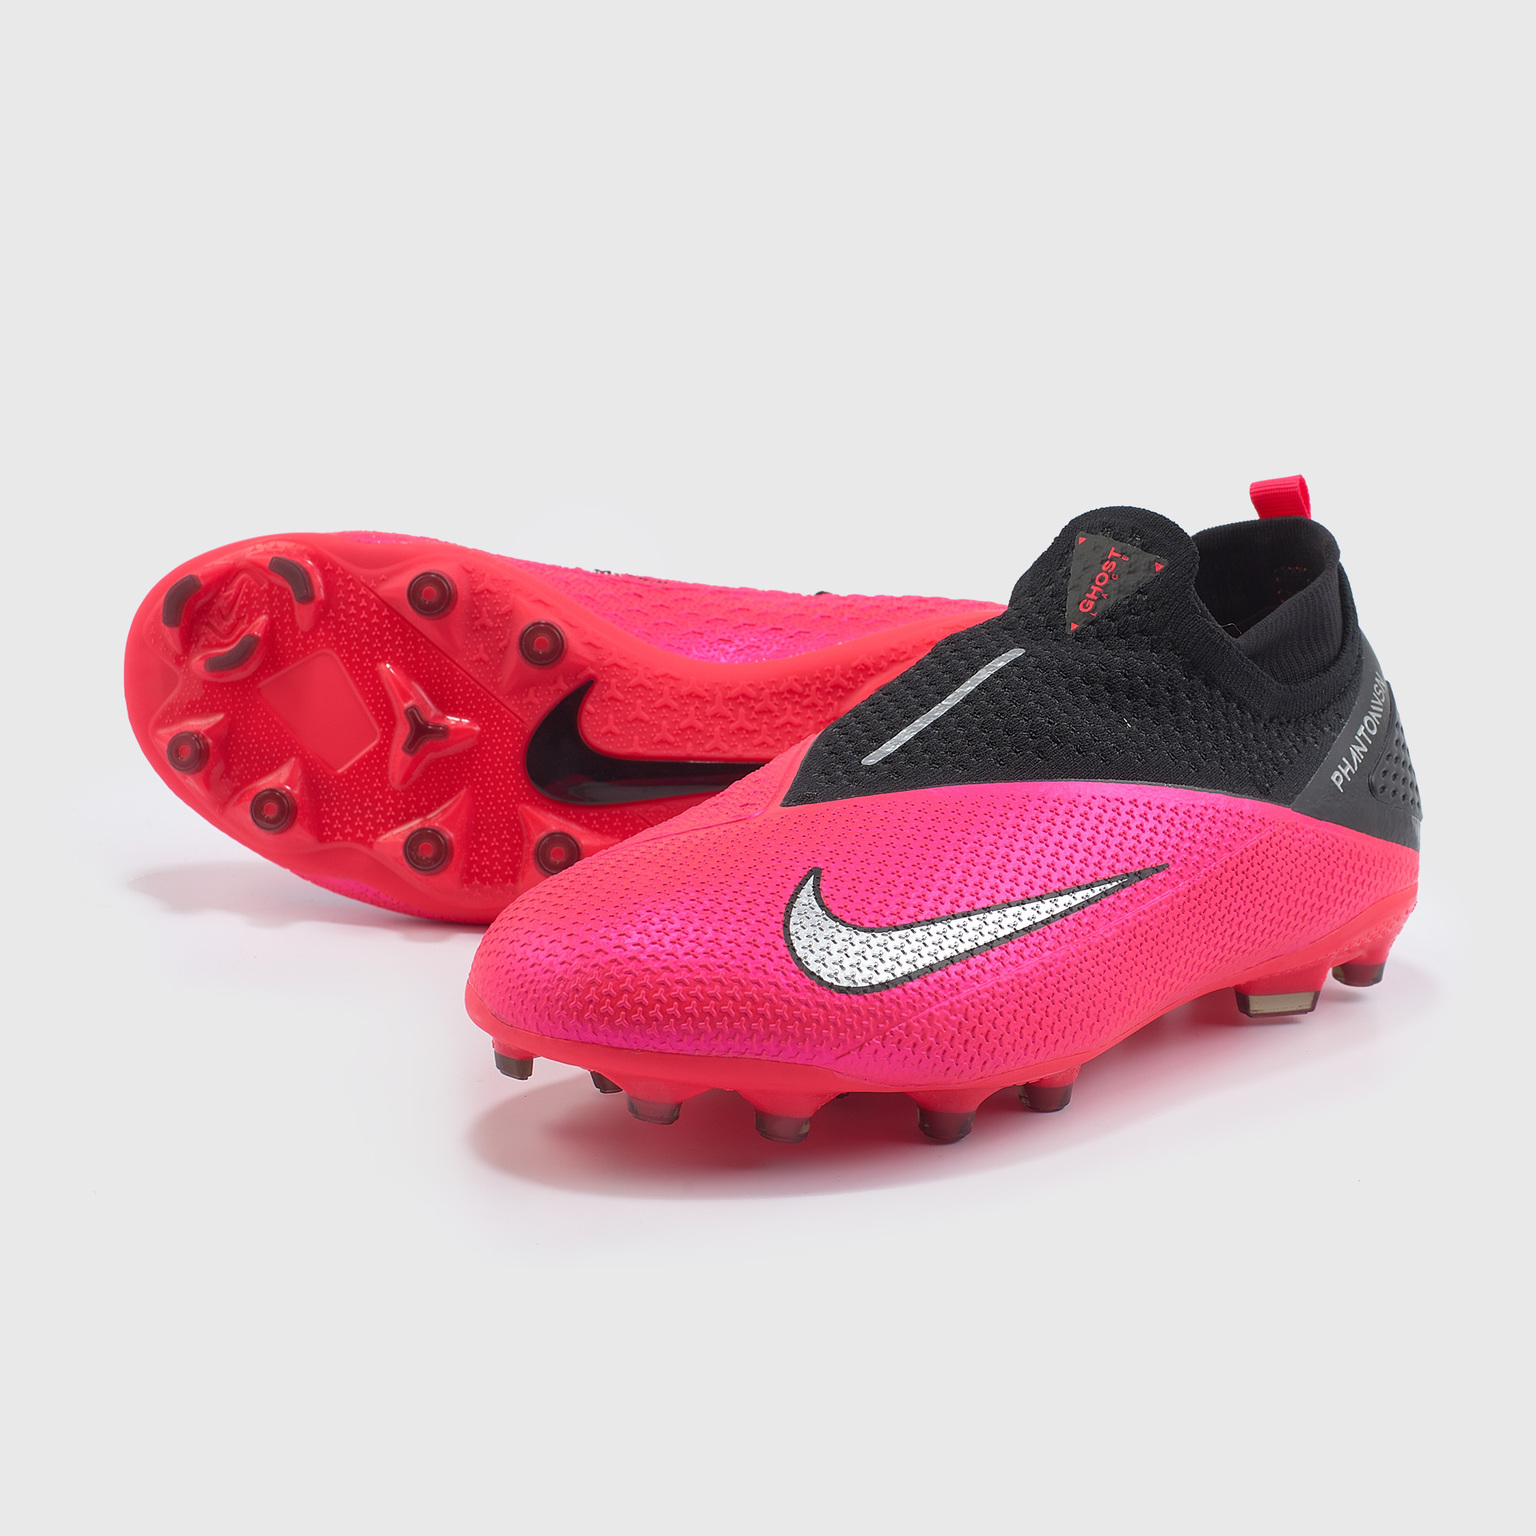 Бутсы детские Nike Phantom Vision 2 Elite DF FG/MG CD4062-606 бутсы nike phantom vision 2 pro df fg cd4162 606